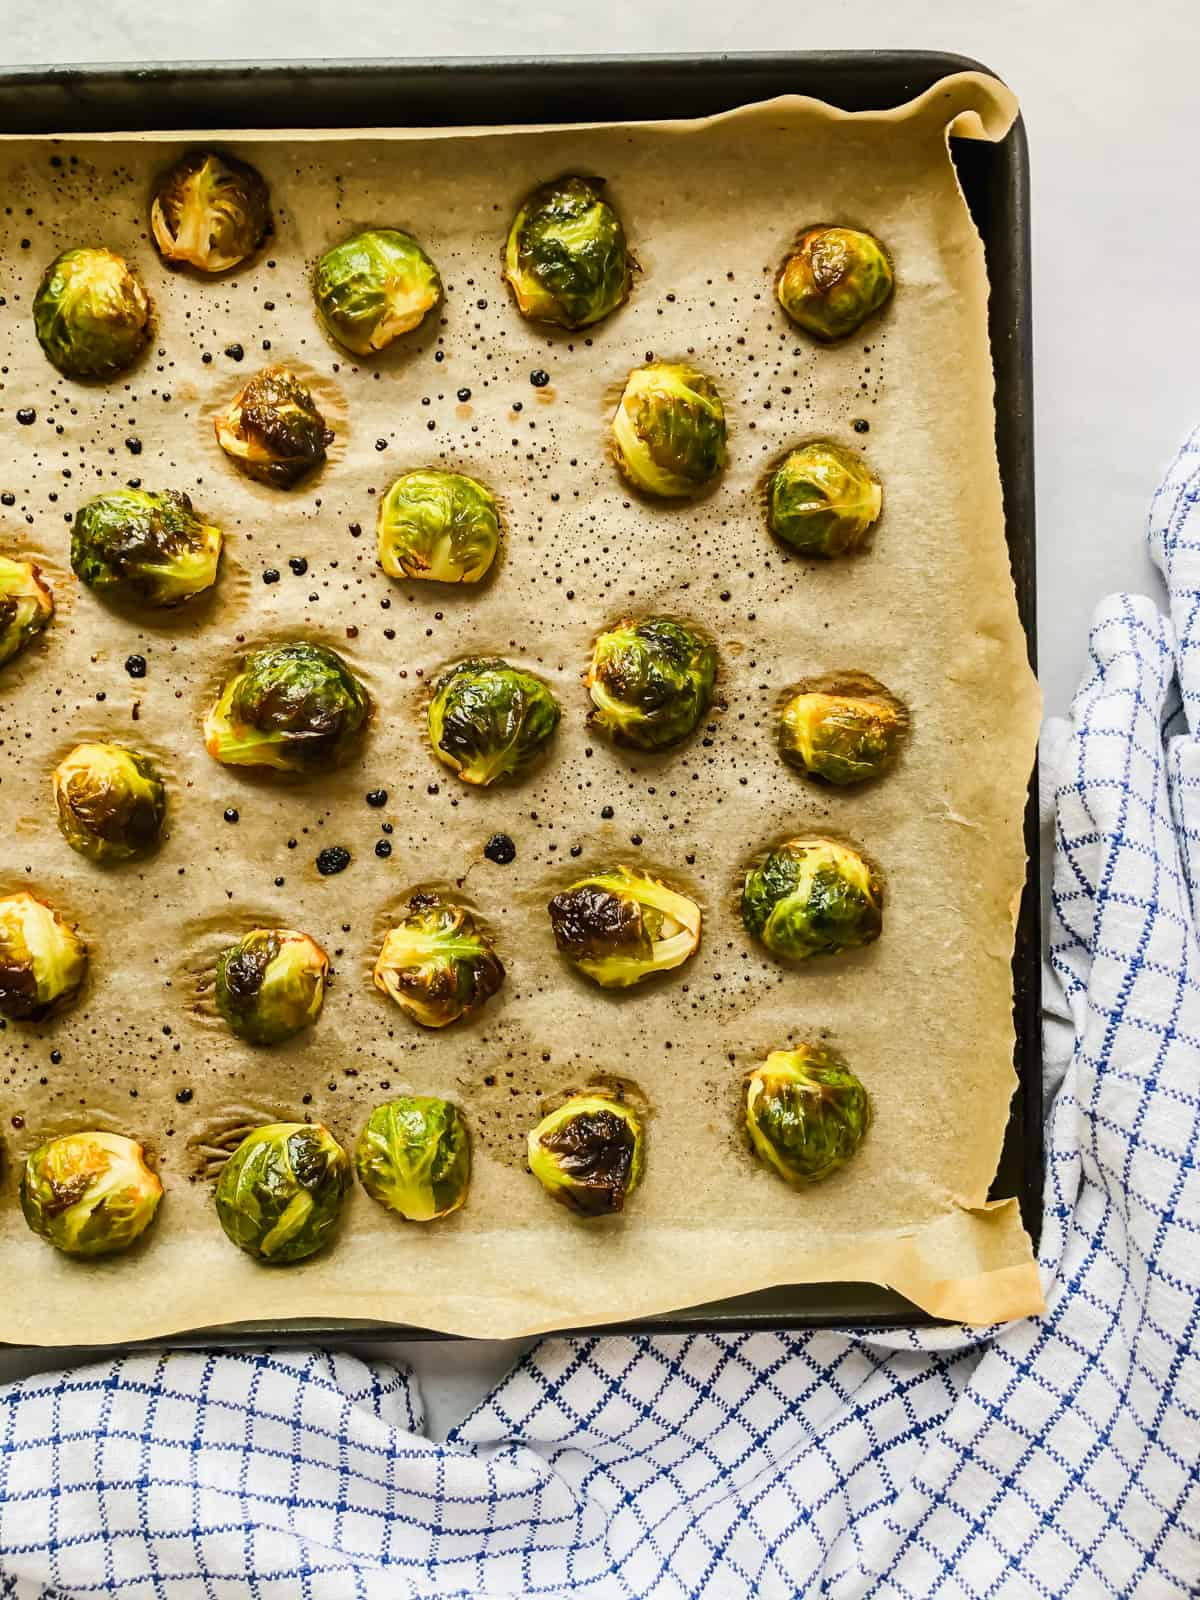 roasted brussels sprouts on a parchment-covered baking sheet on a white background